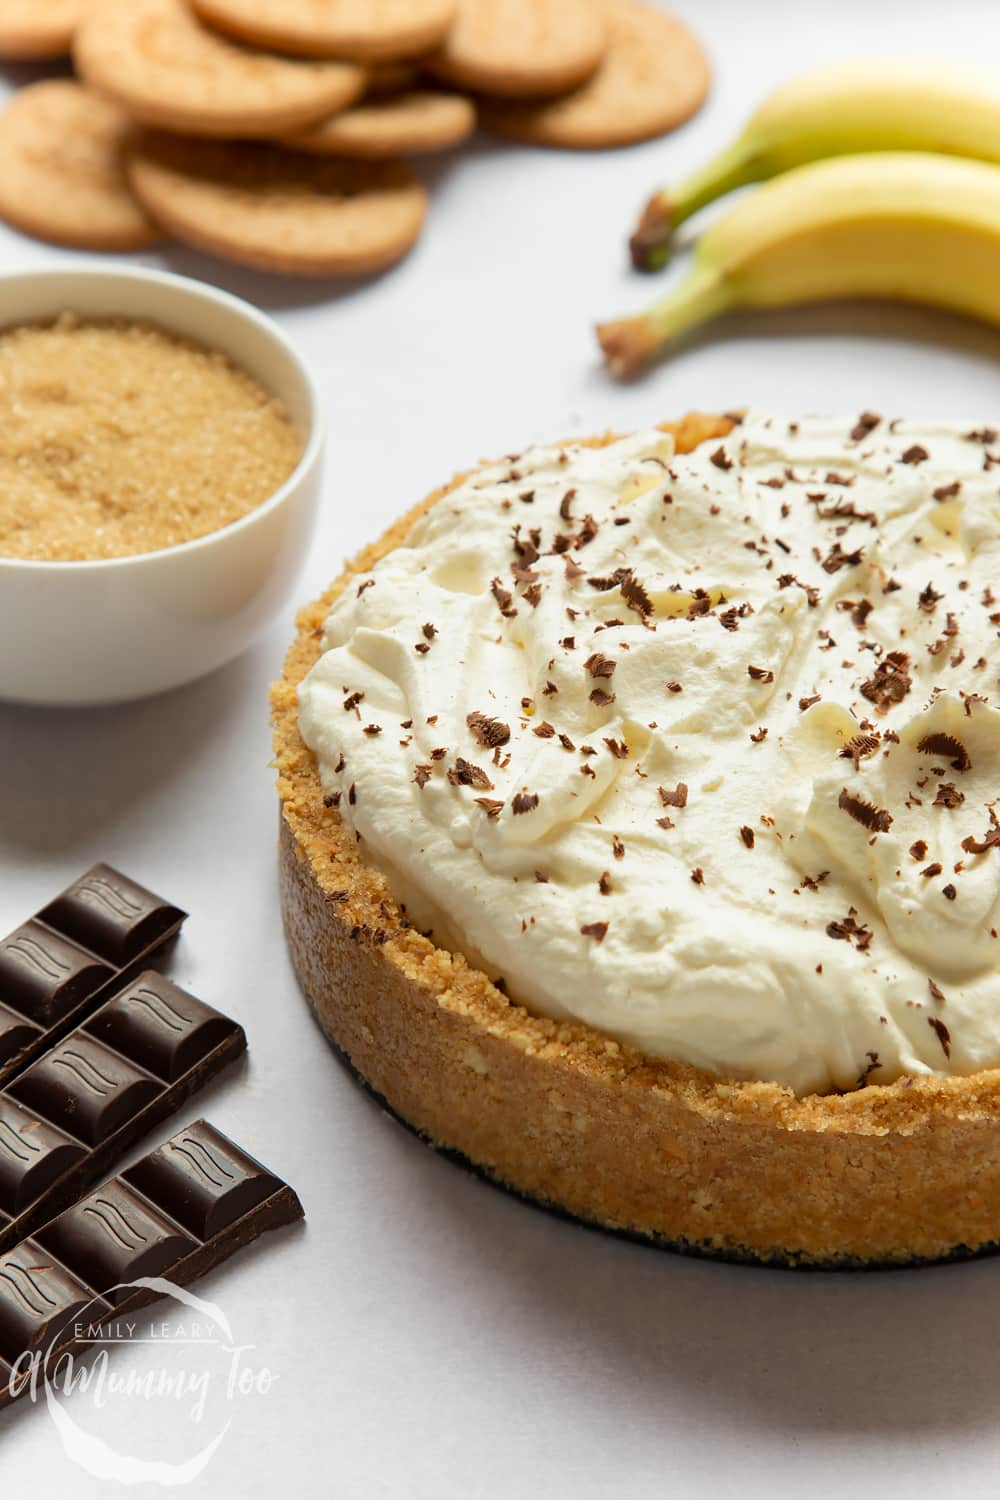 The perfect classic banoffee pie recipe - full pie showing the biscuit crust